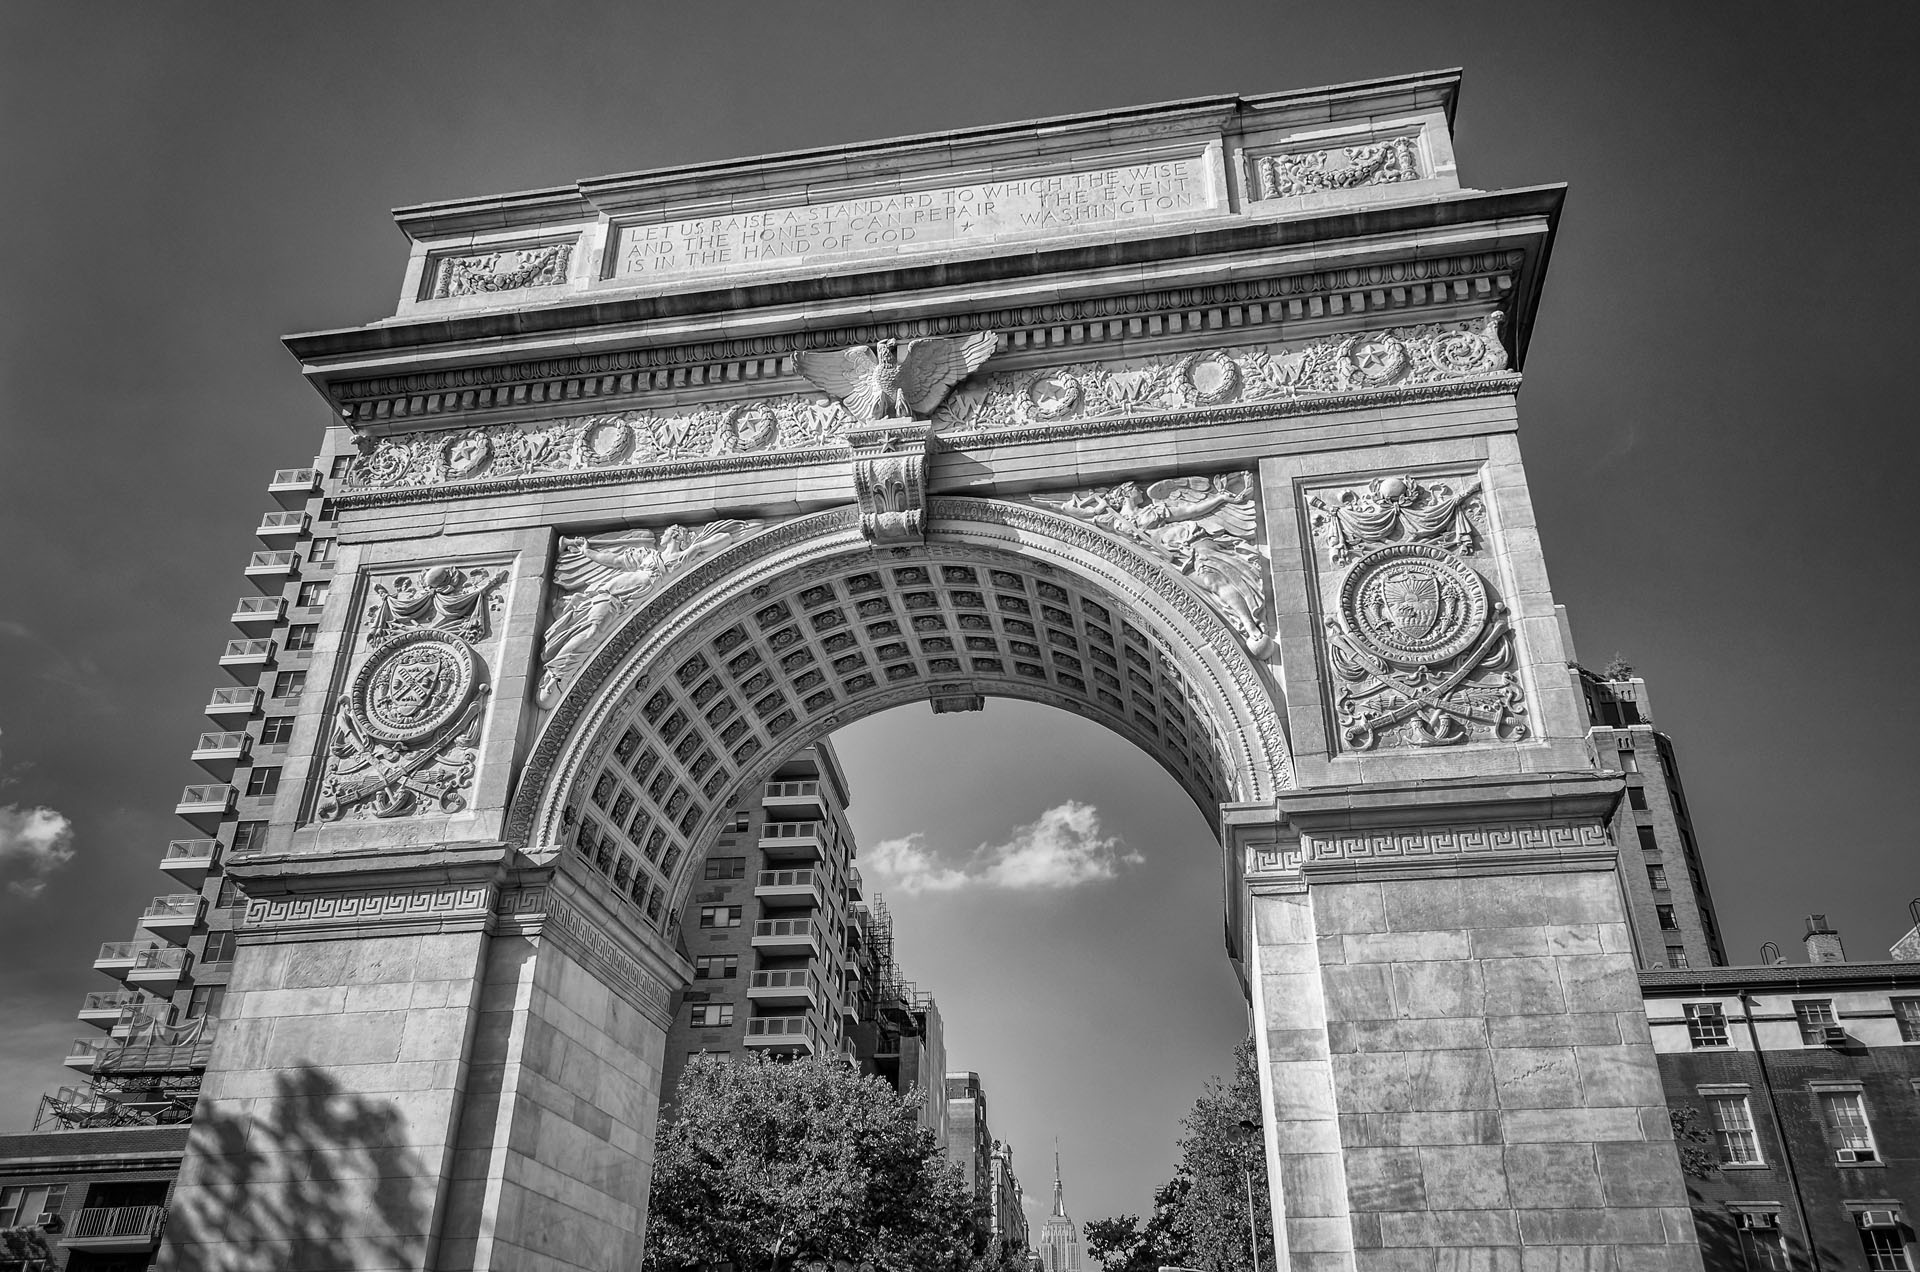 Washington Square Arch and Empire State Building, New York, USA